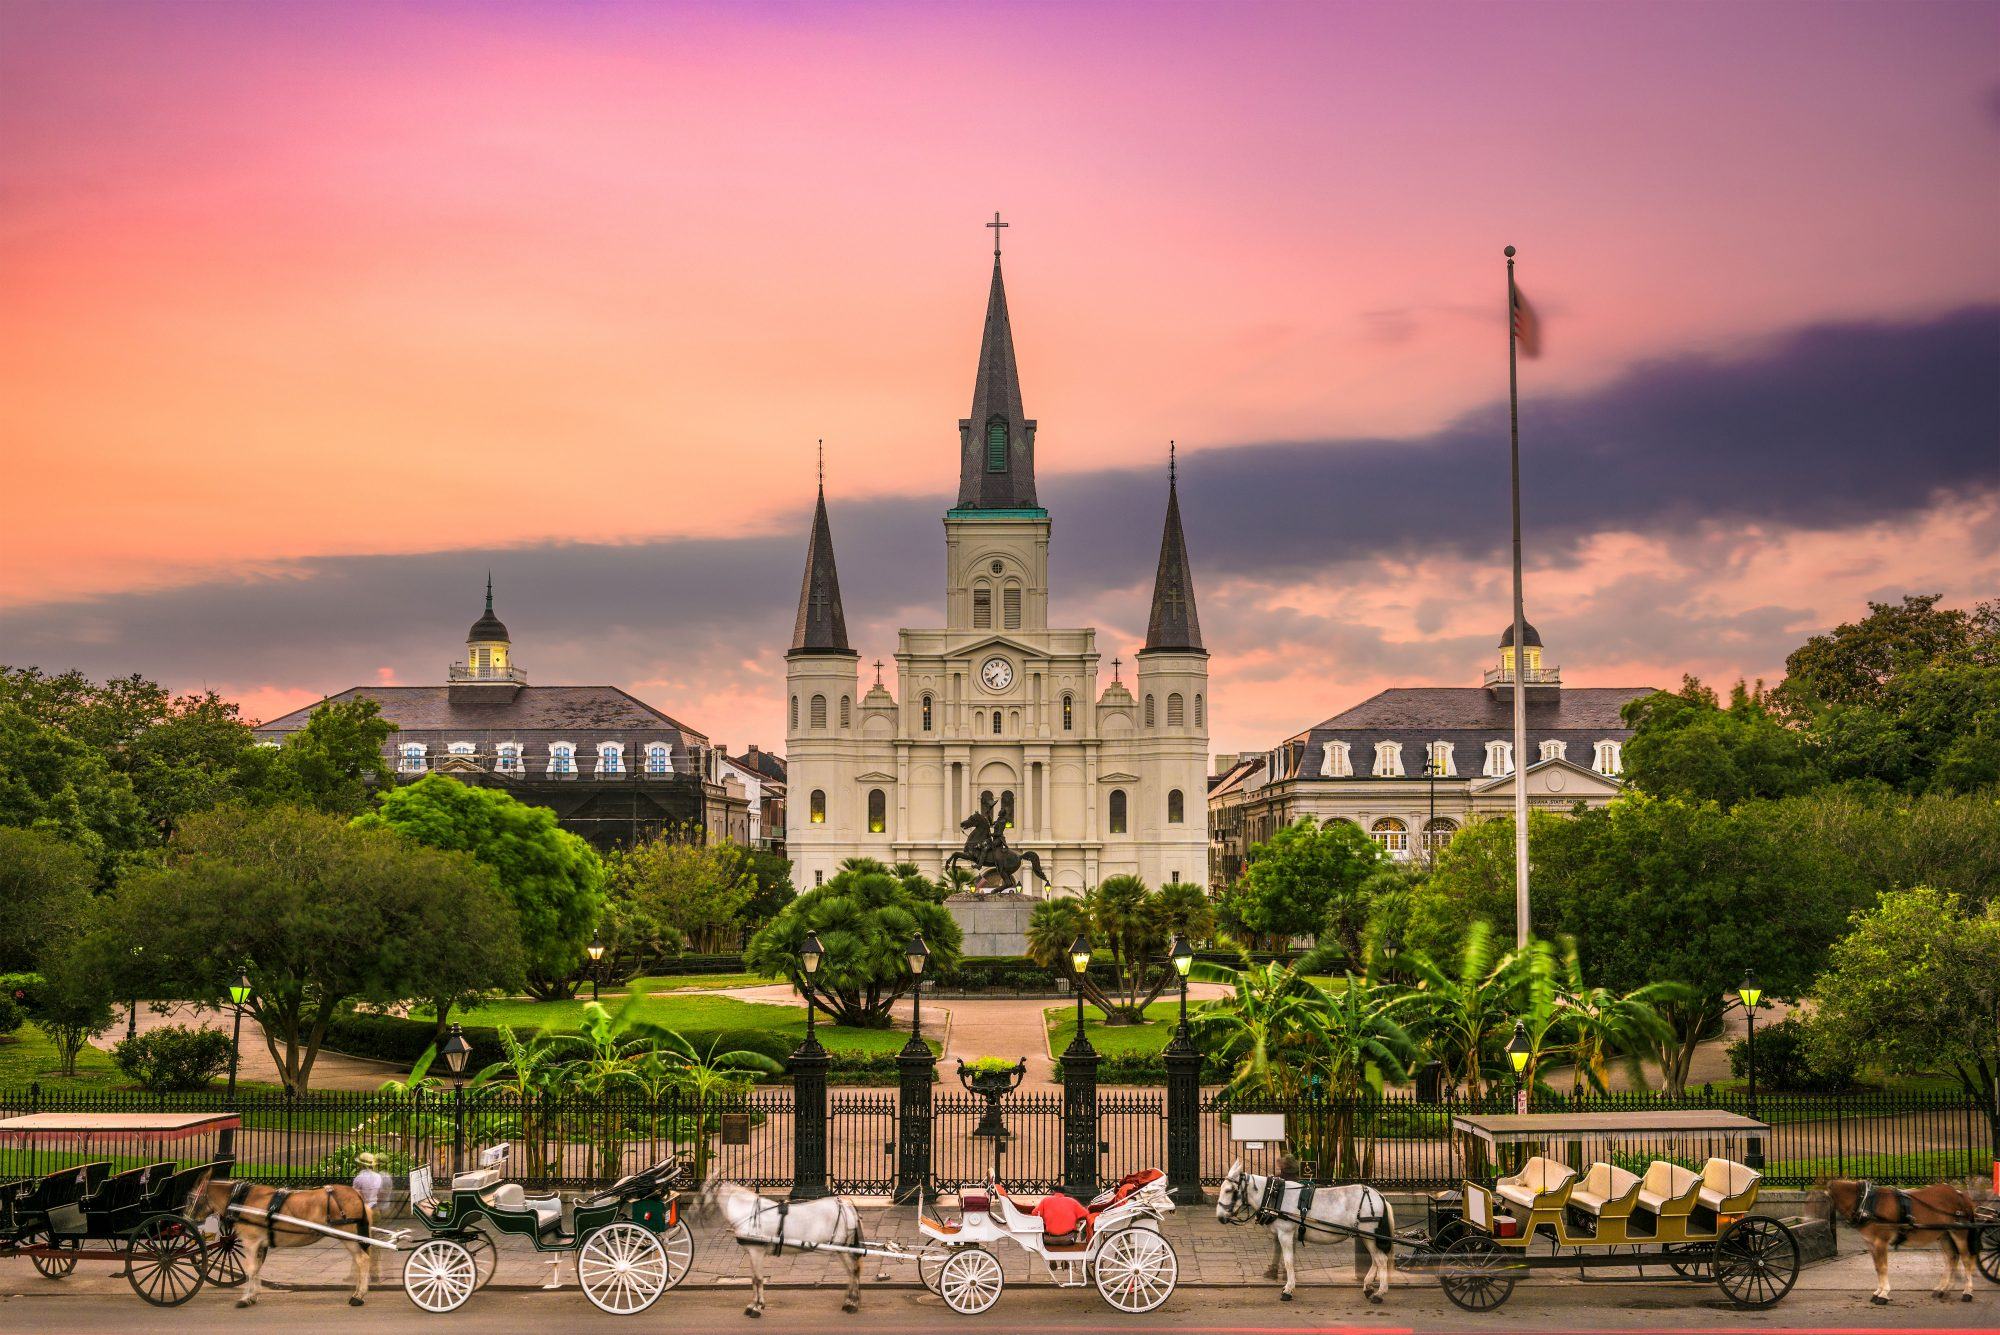 3. New Orleans, Louisiana